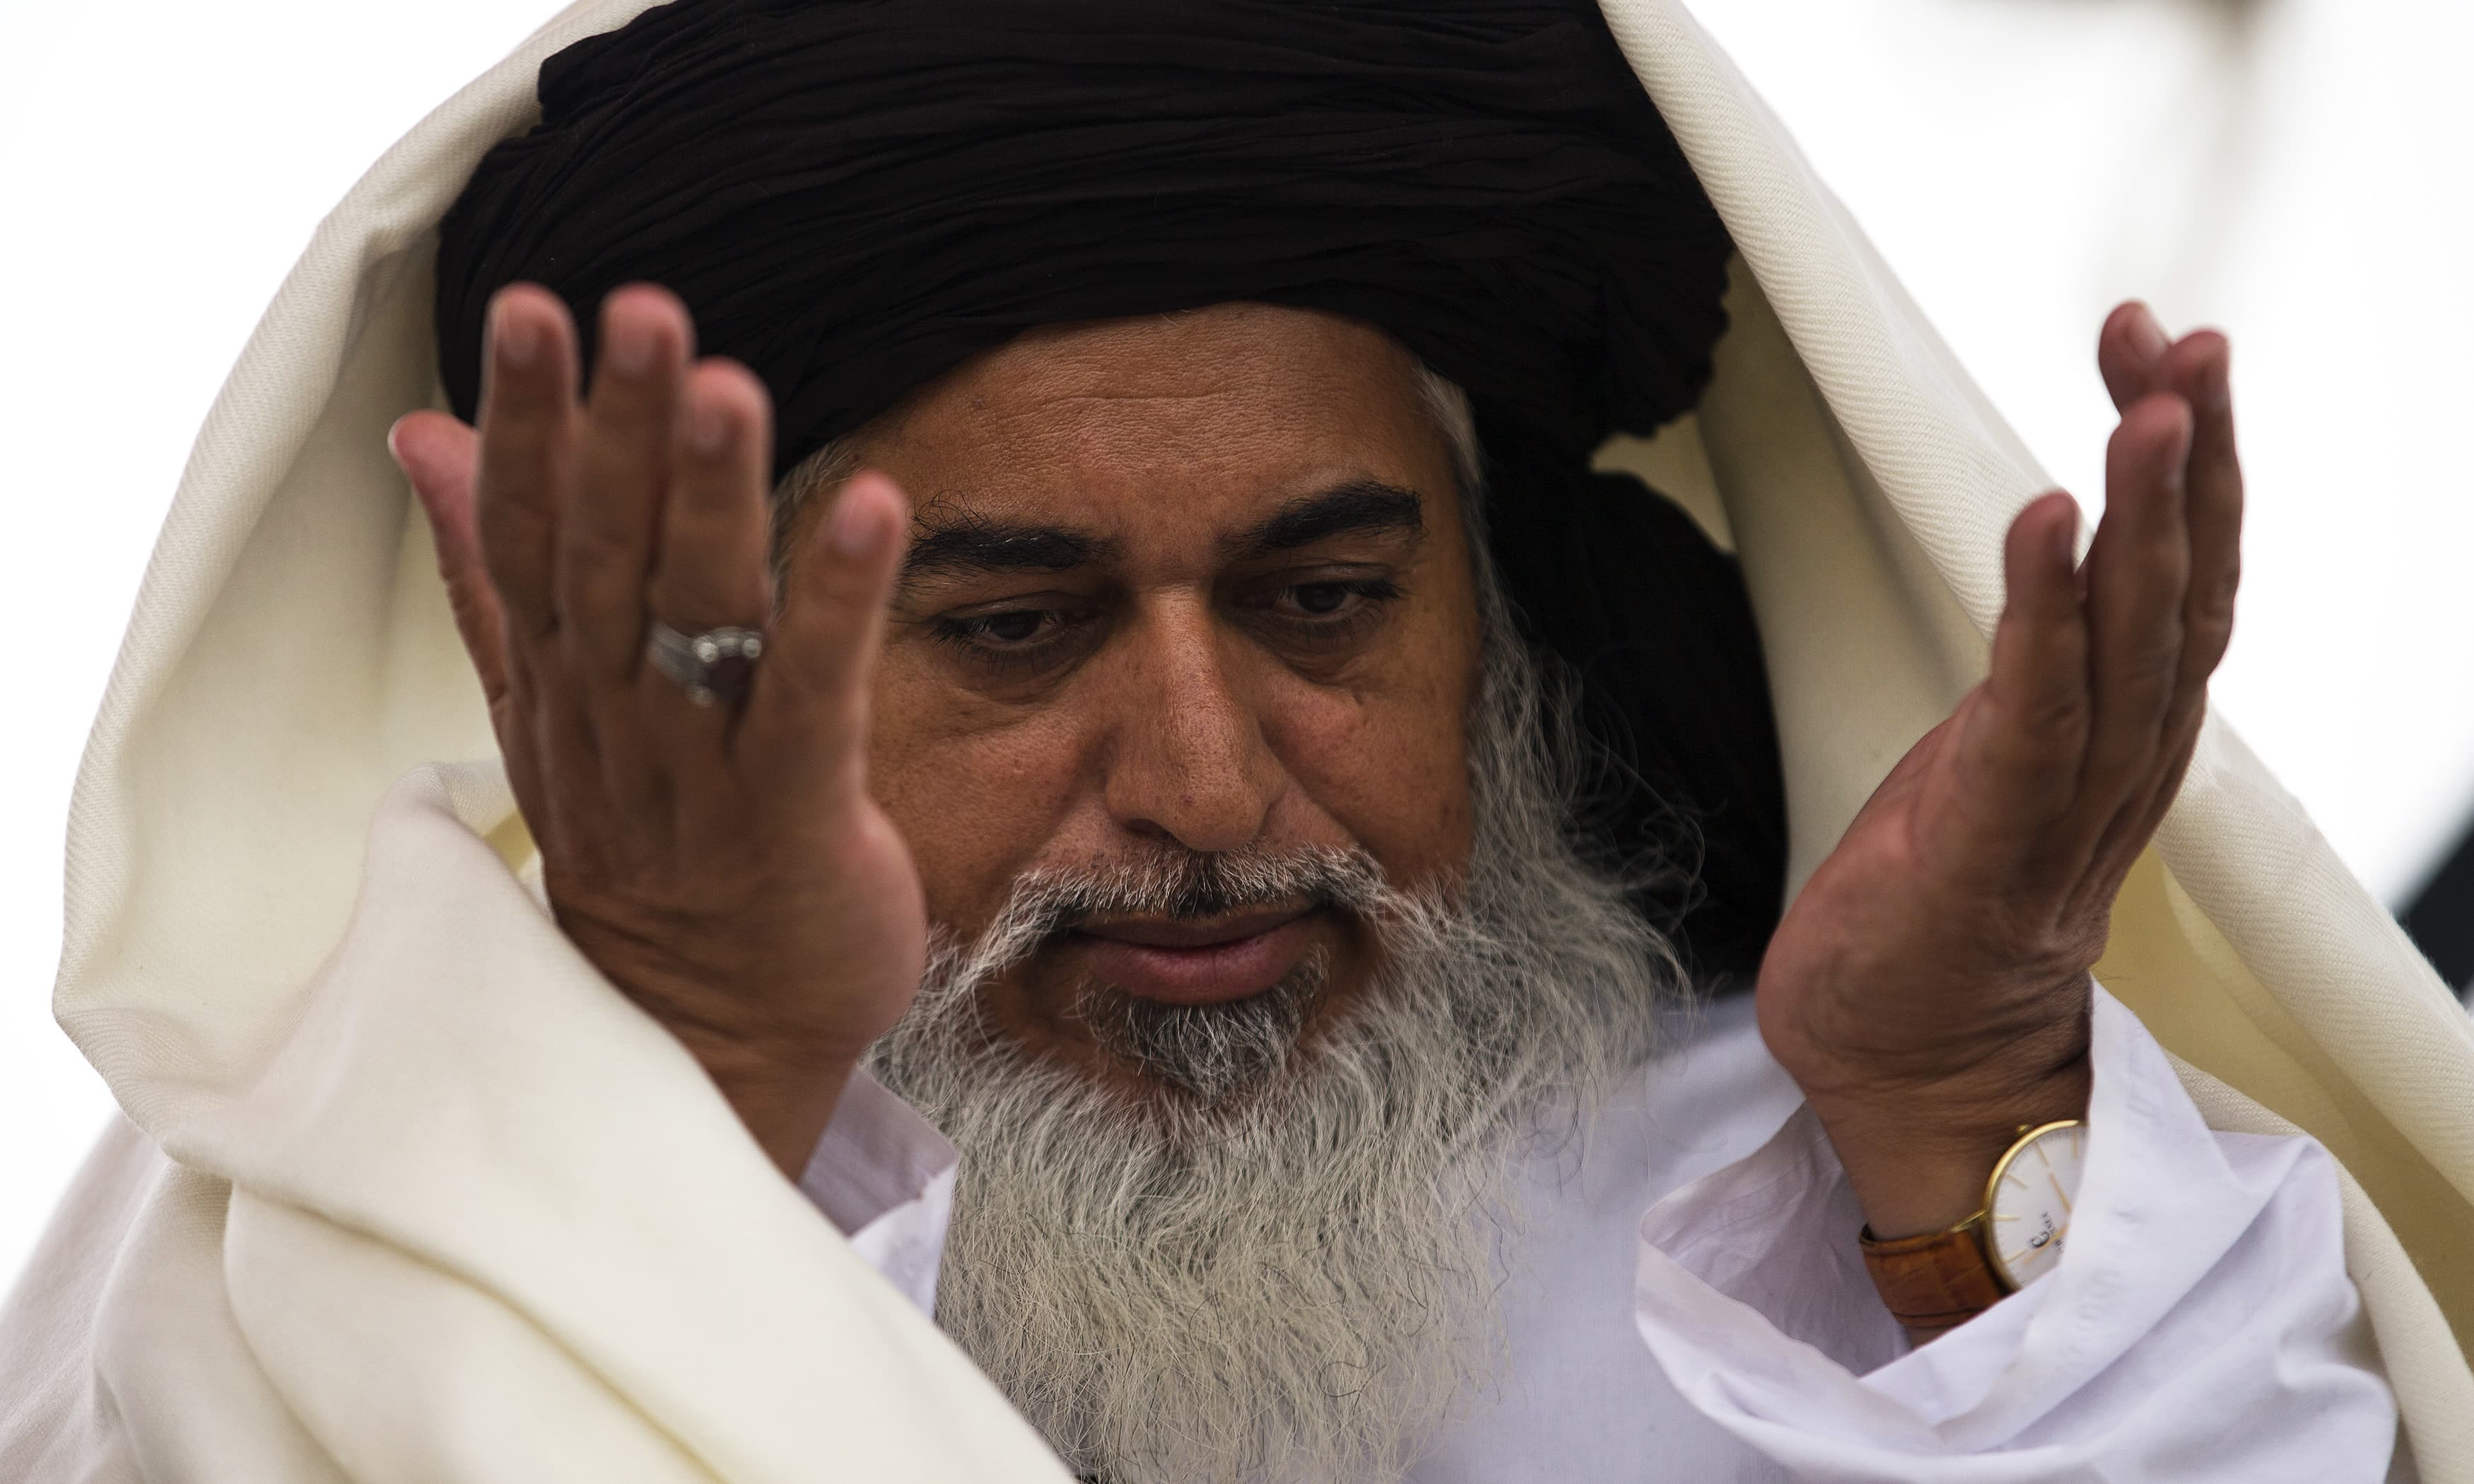 ATC issues arrest warrants for TLP chief Khadim Rizvi, three others in Faizabad sit-in case